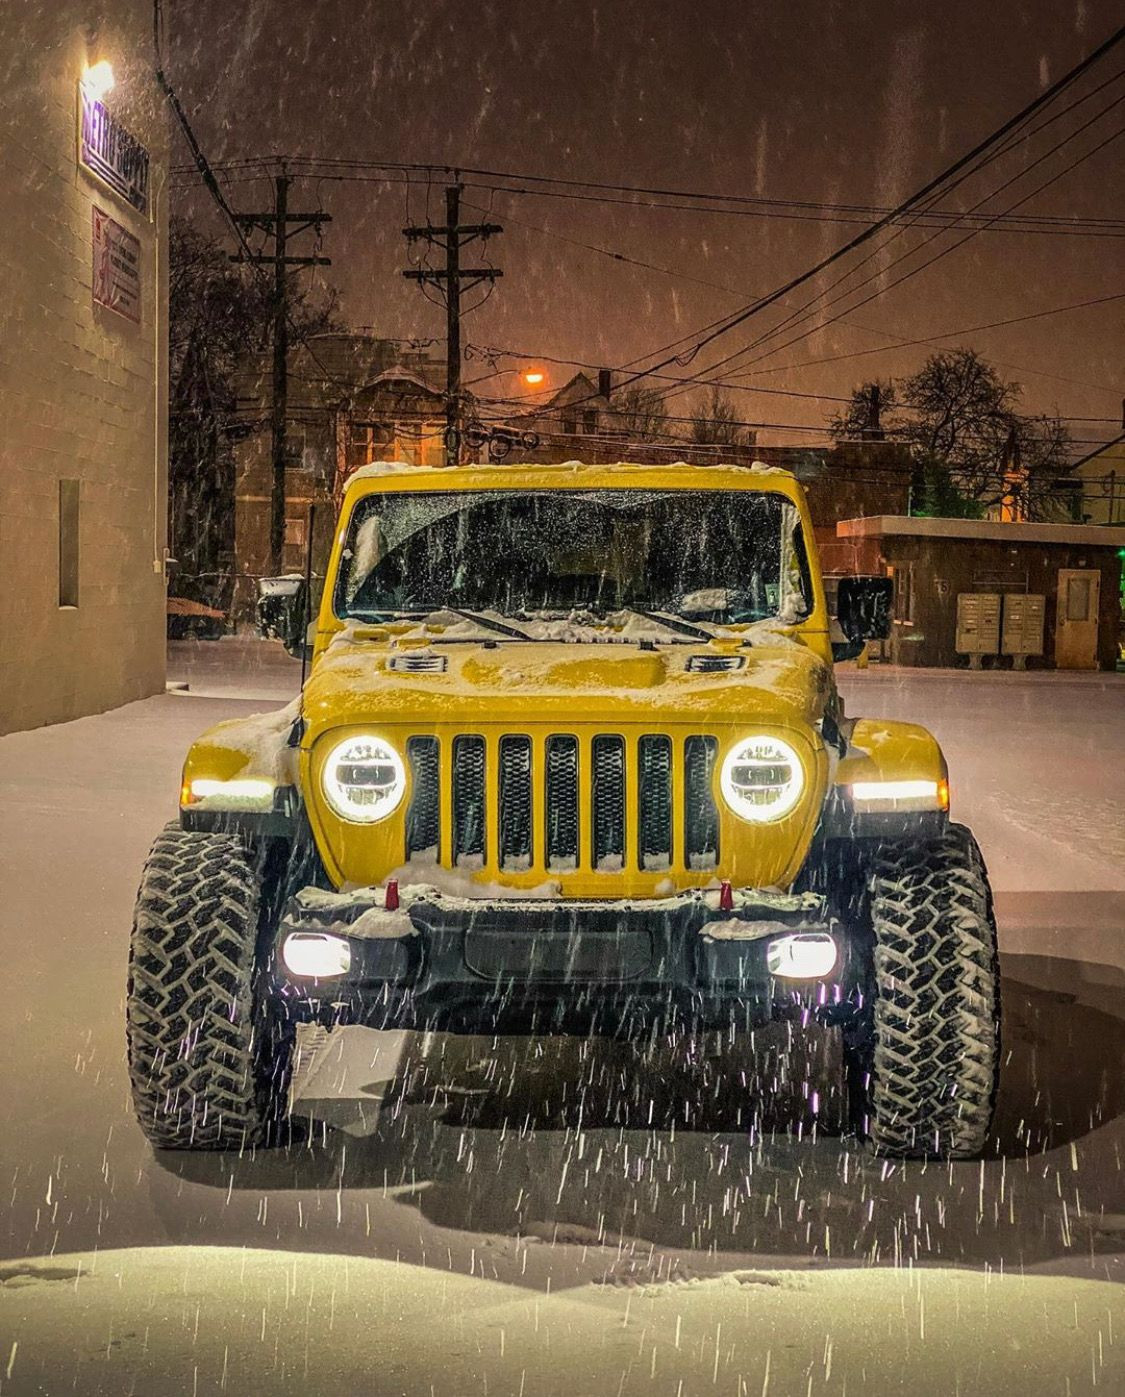 Bold In The Cold Hellafresh Jl Jeep Wrangler Rubicon Jl With Led Headlights And Fog Lights In Th In 2020 Jeep Wrangler Rubicon Jeep Scout Jeep Wrangler